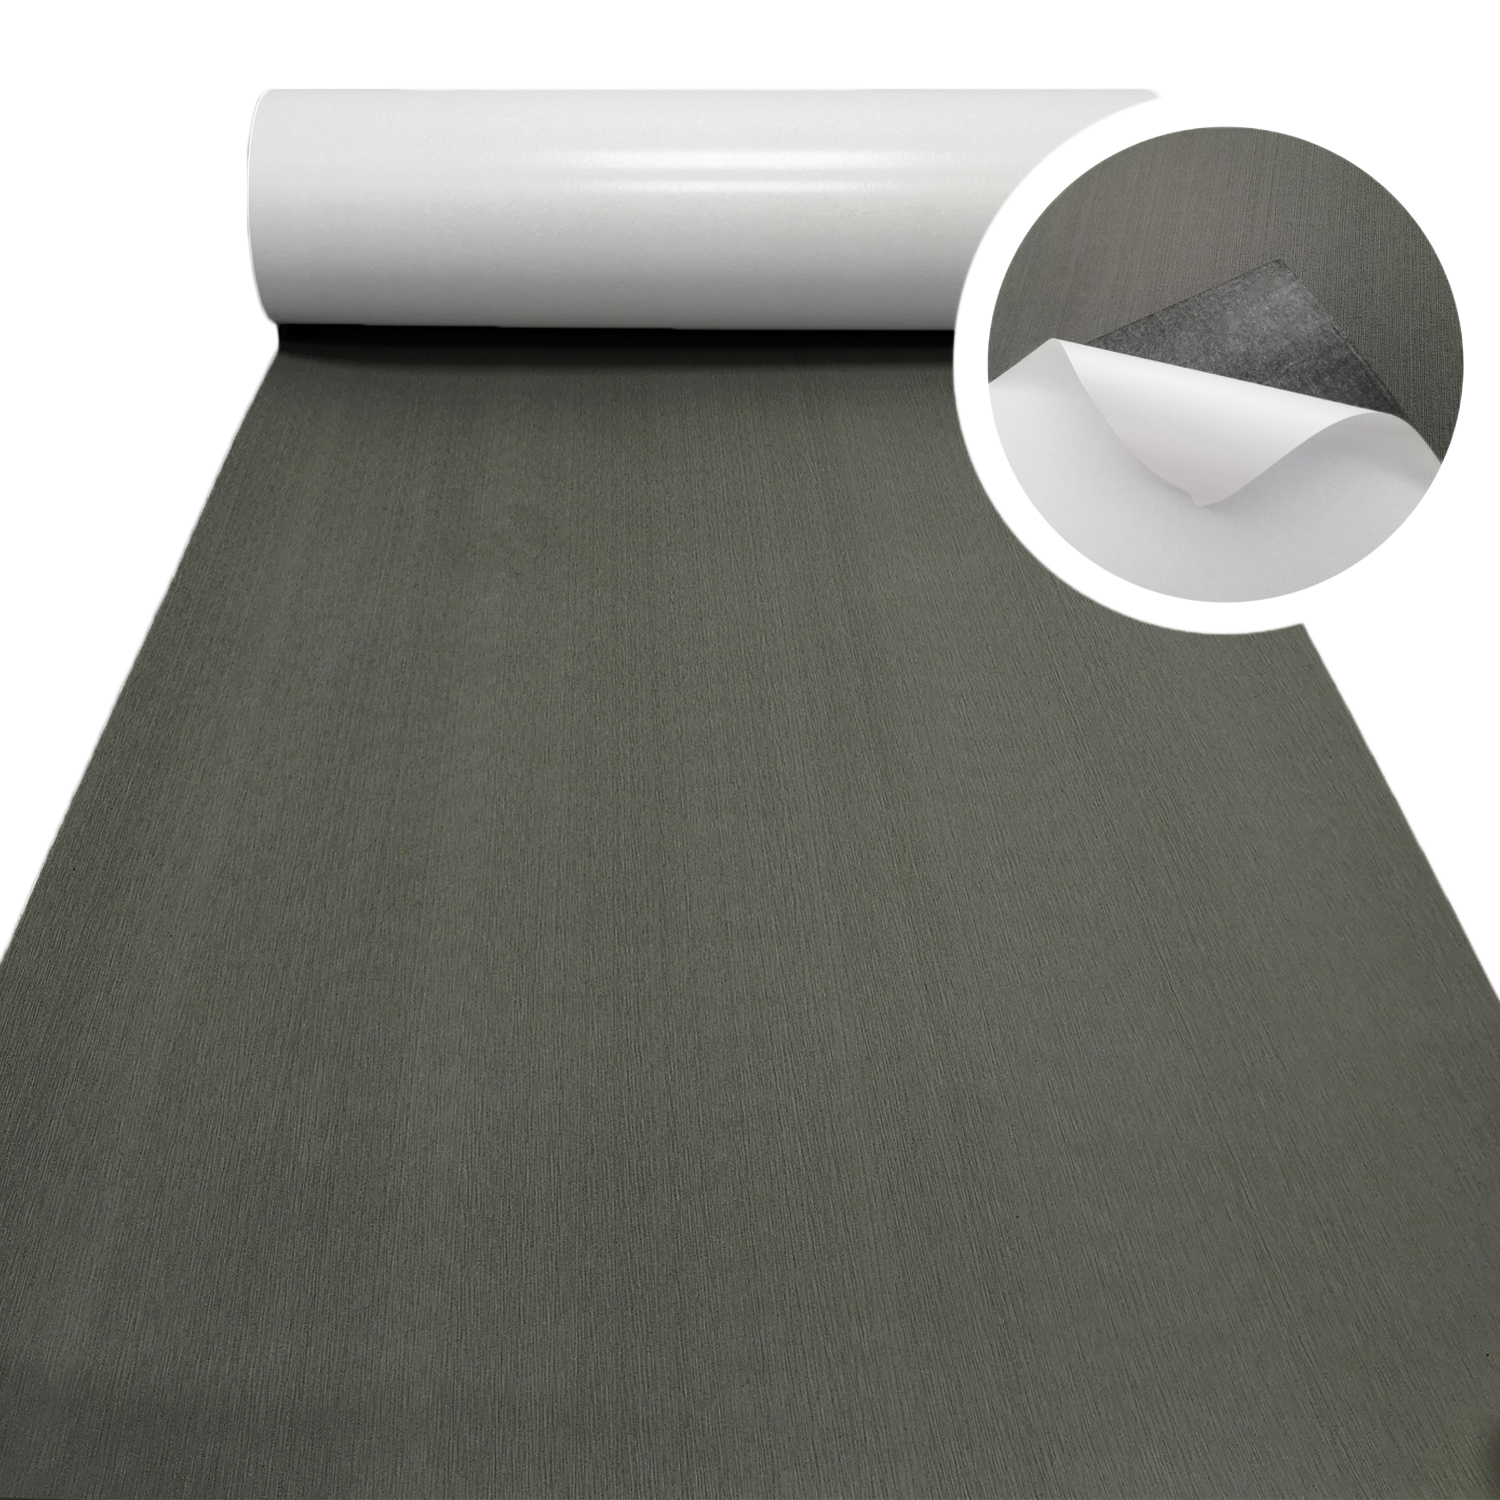 EVA Foam Faux Teak Decking Sheet Dark Gray Yacht Marine Carpet Flooring Mat Non Skid Self Adhesive Sea Deck Boat Accessories